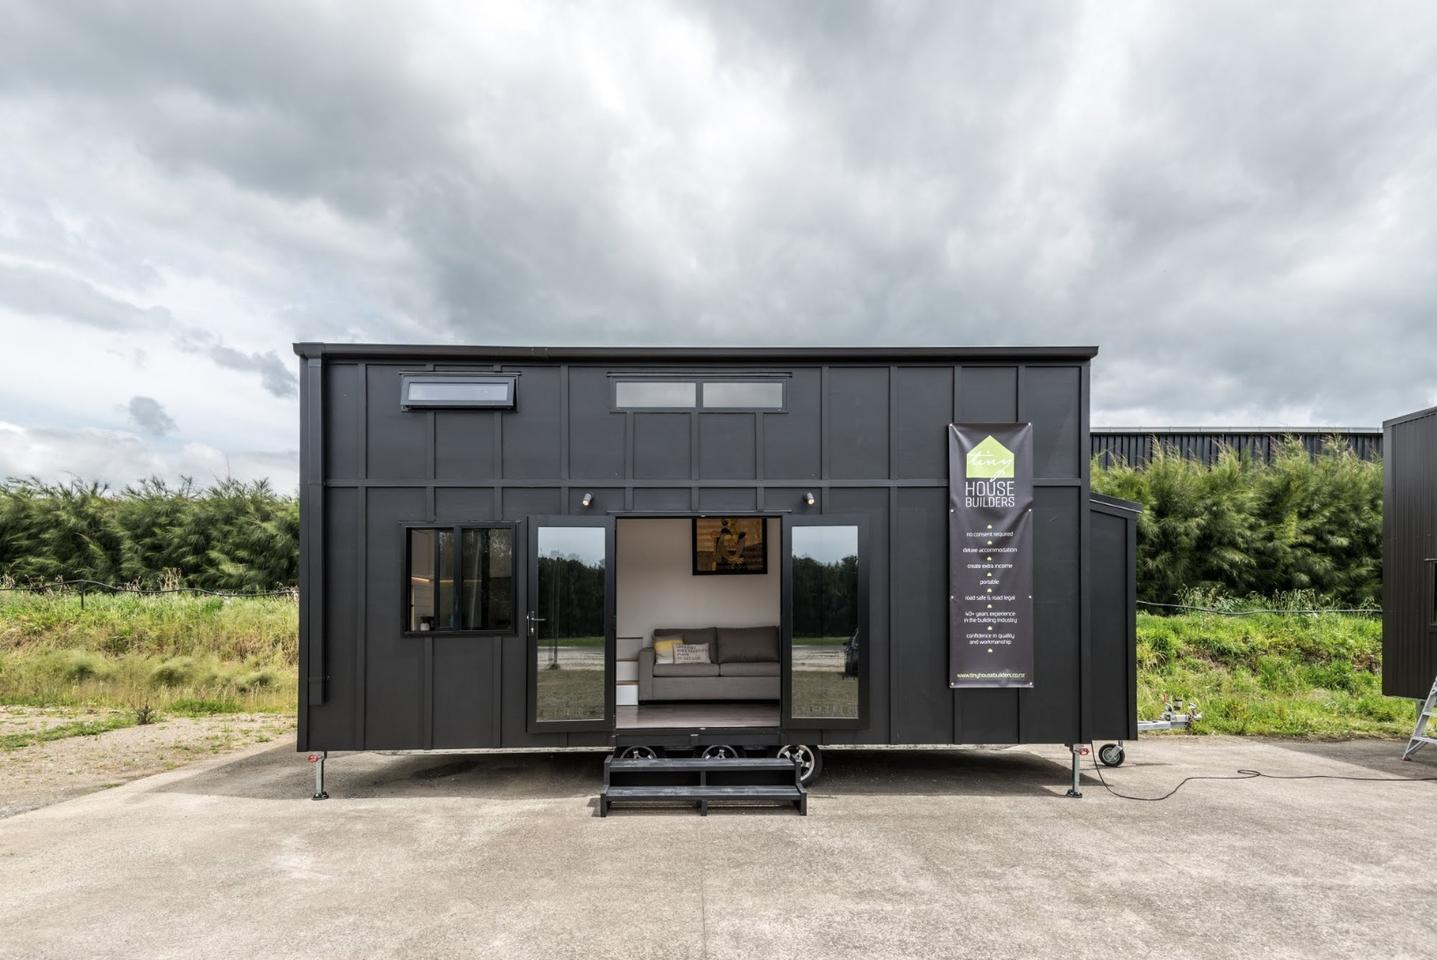 NewZealand-based and family run studio Tiny House Builders hasrecently launched its impressive and sophisticated Pohutukawa tinyhouse on wheels